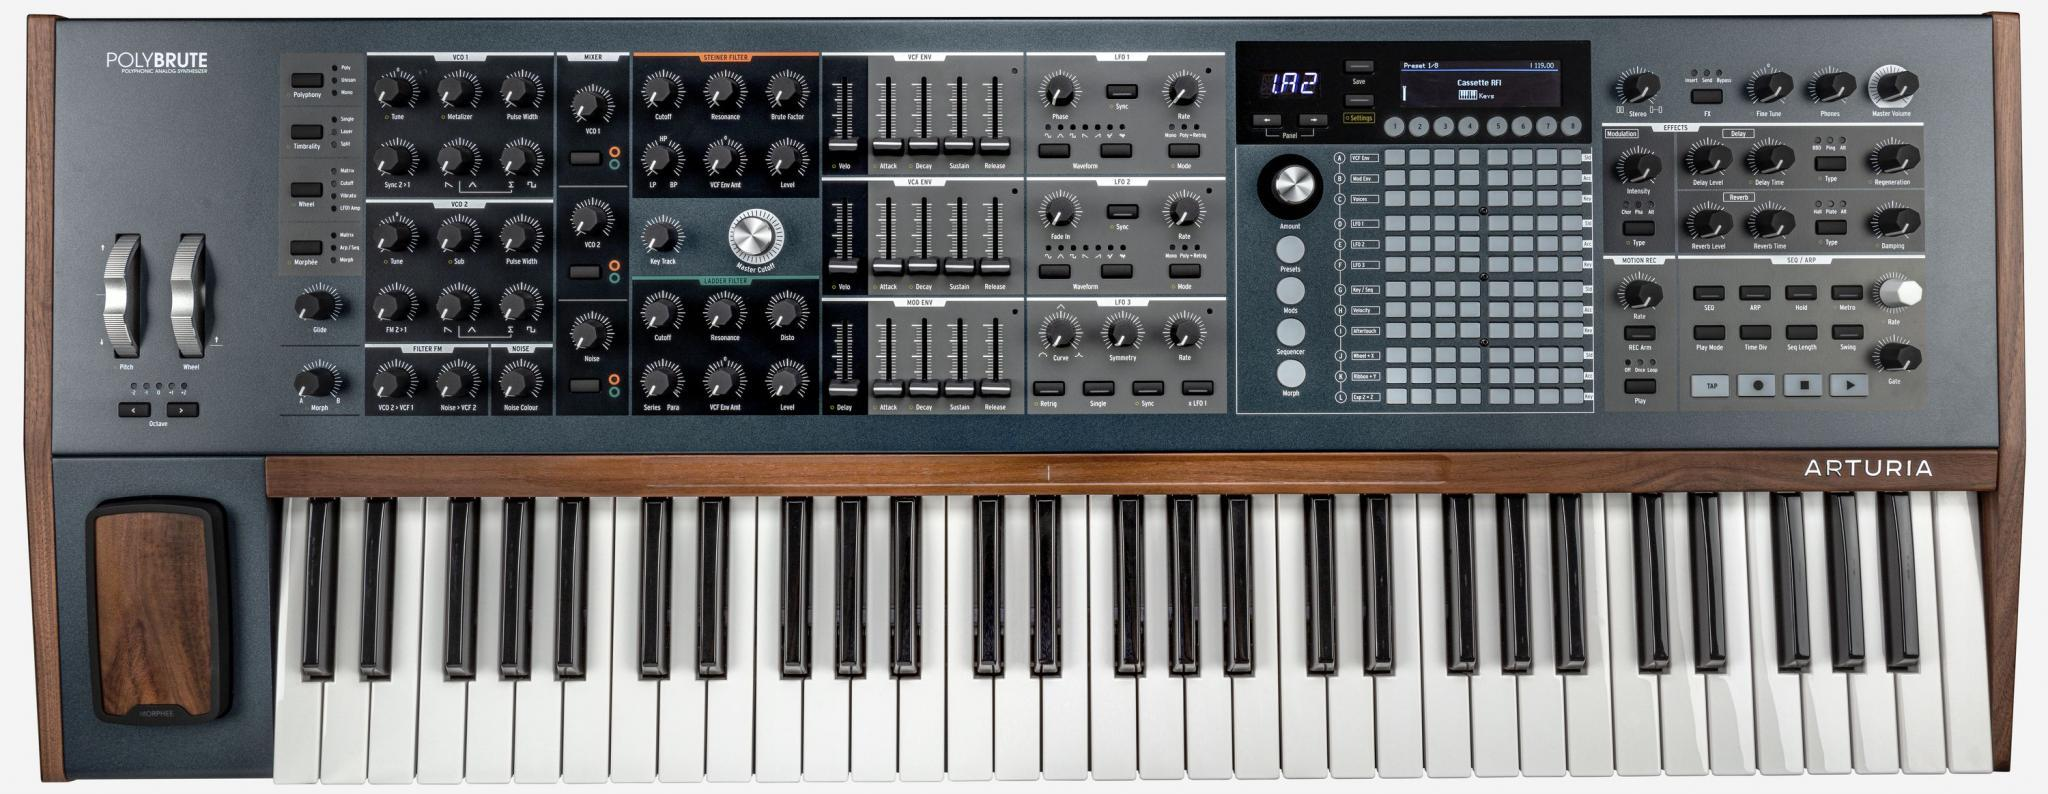 Arturia S Polybrute Is A Beastly Analog Synth With Infinite Control Engadget